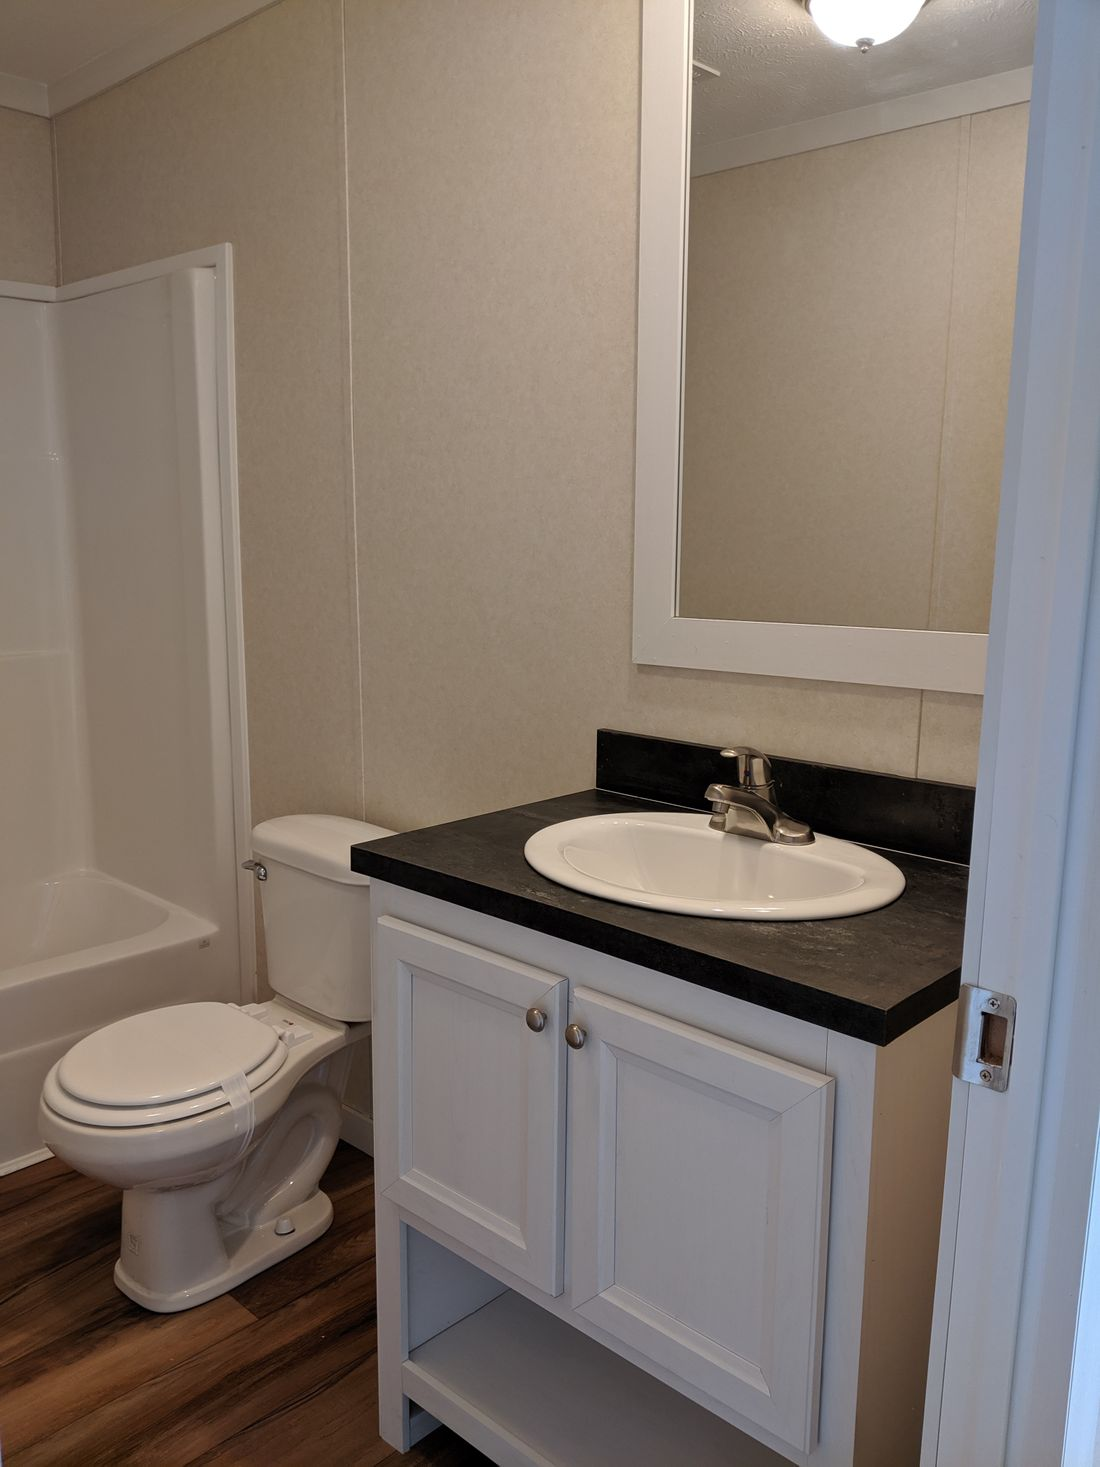 The CS2440-A Guest Bathroom. This Manufactured Mobile Home features 3 bedrooms and 2 baths.